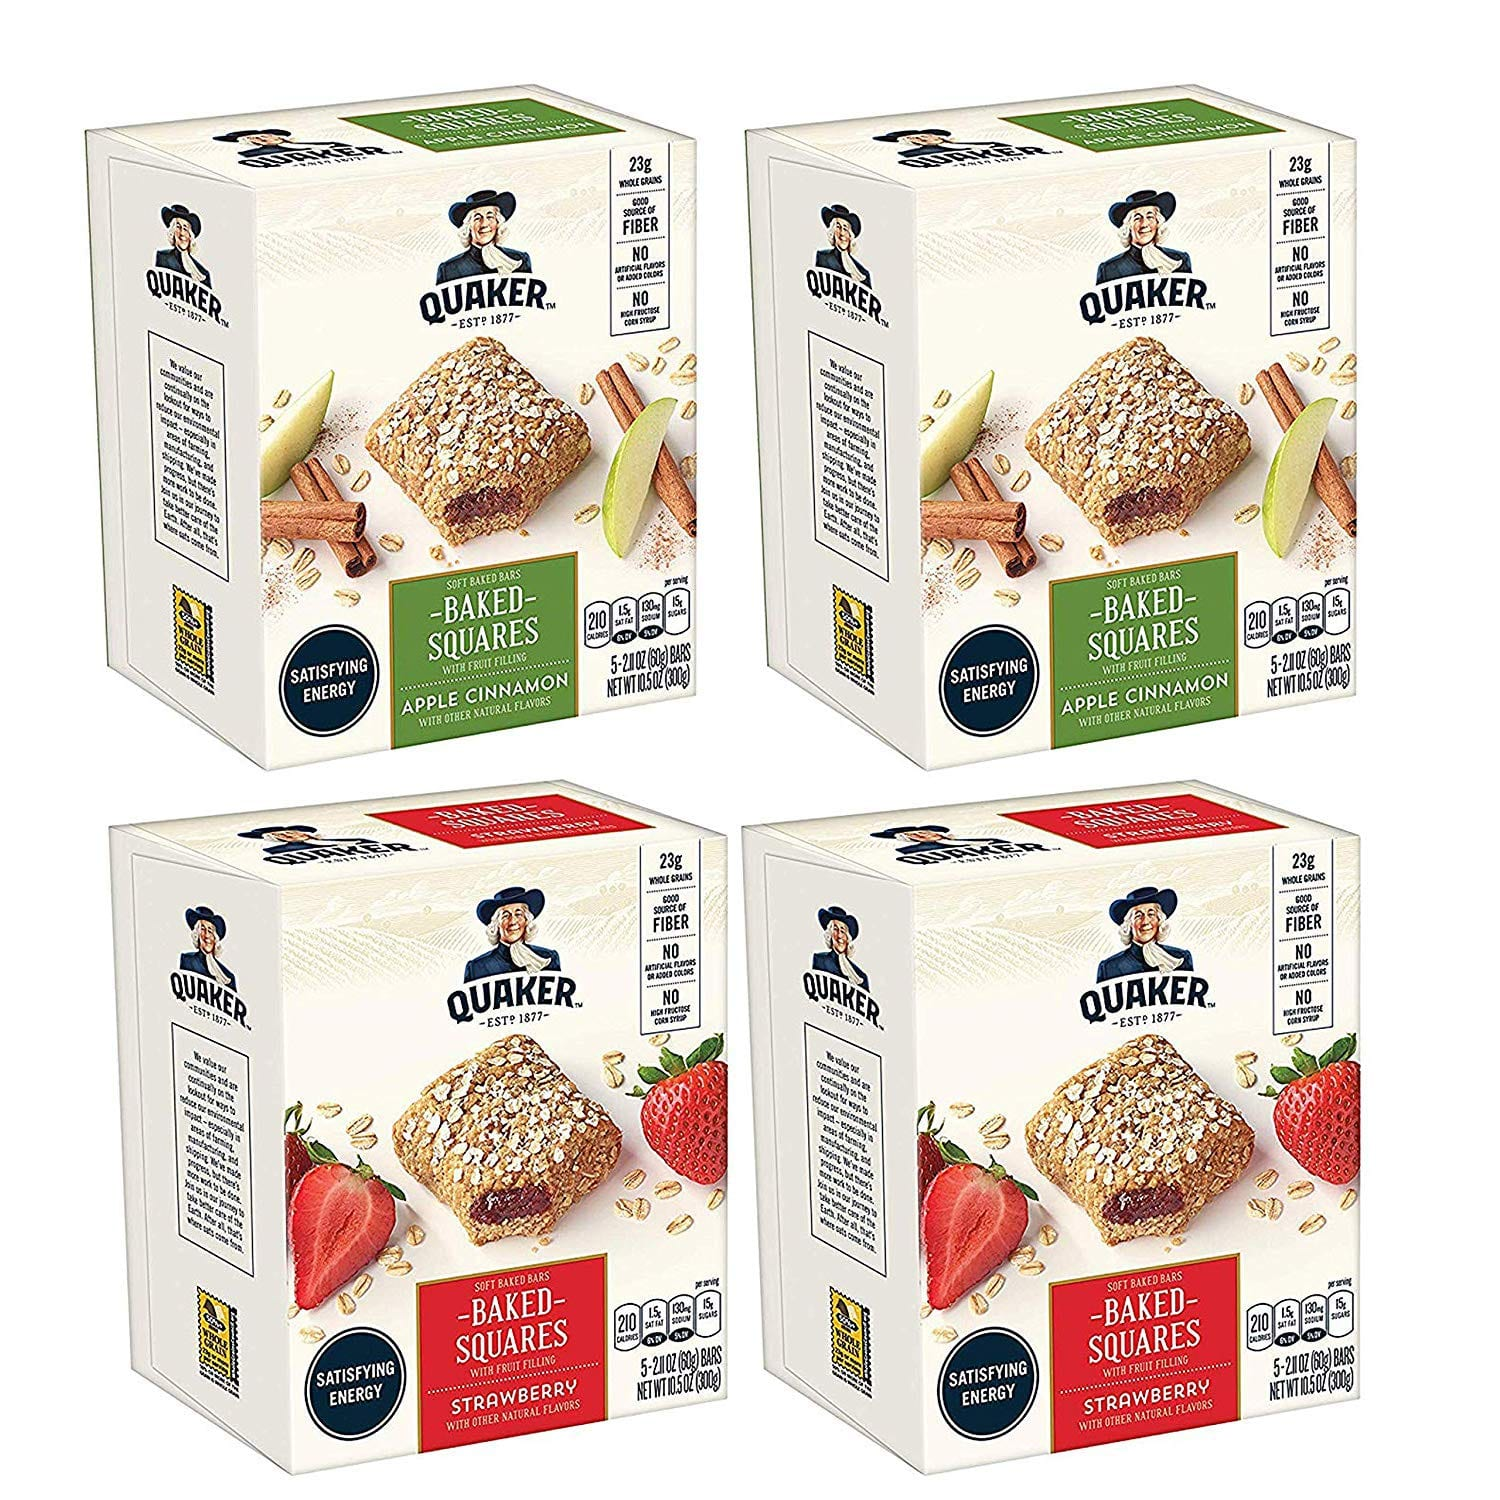 4-Pack of 5-Count Quaker Baked Squares (Apple Cinnamon & Strawberry) $7.50 w/ S&S + Free S&H